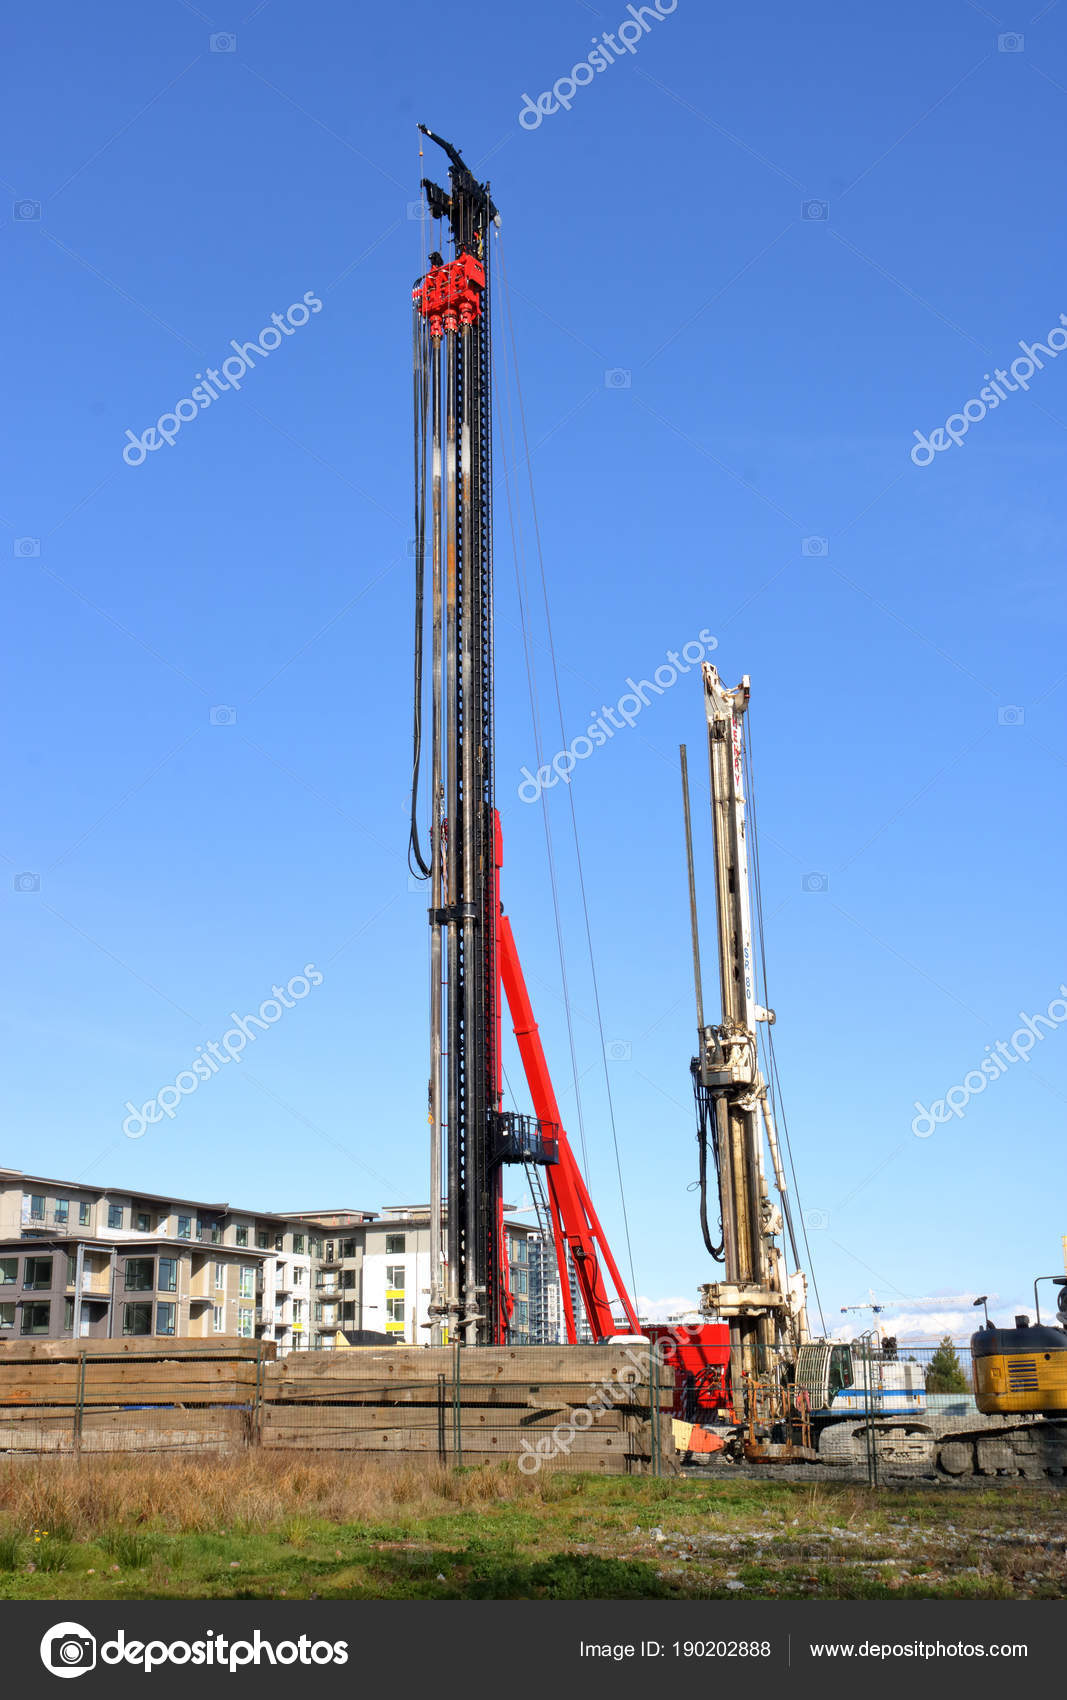 Vertical View Rotary Drilling Rig Used Preparing